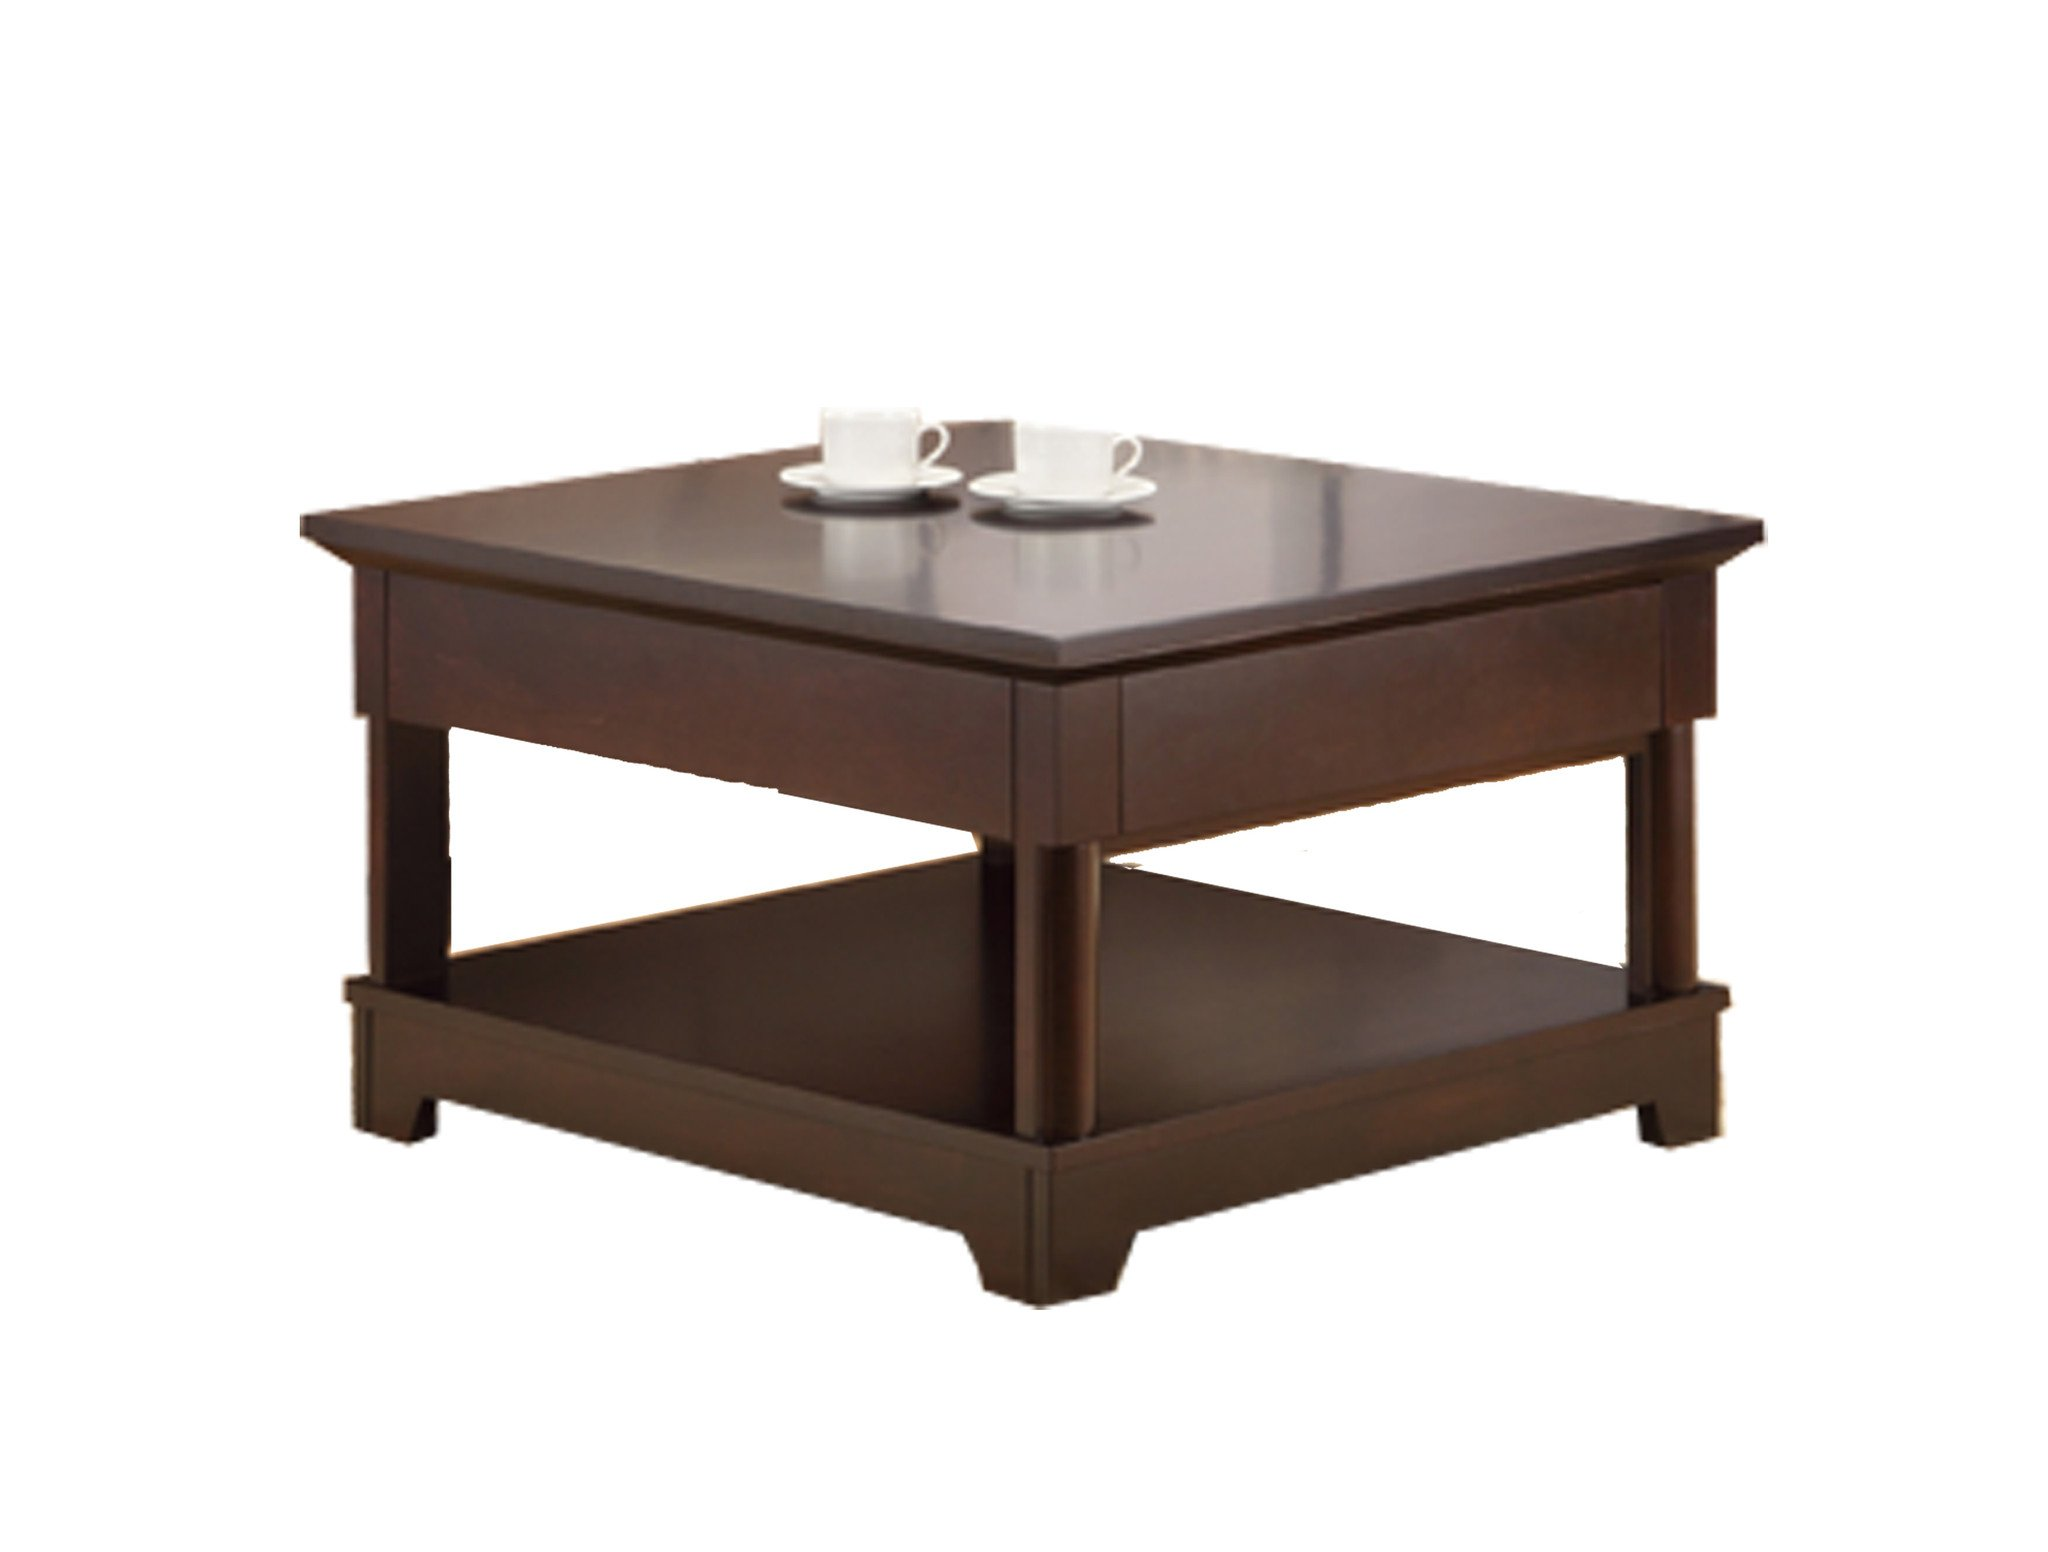 accent tables frederick furniture gallery teague table ottawa hudson valley round pedestal coffee side design for bedroom low modern narrow bedside with drawers vintage and chairs